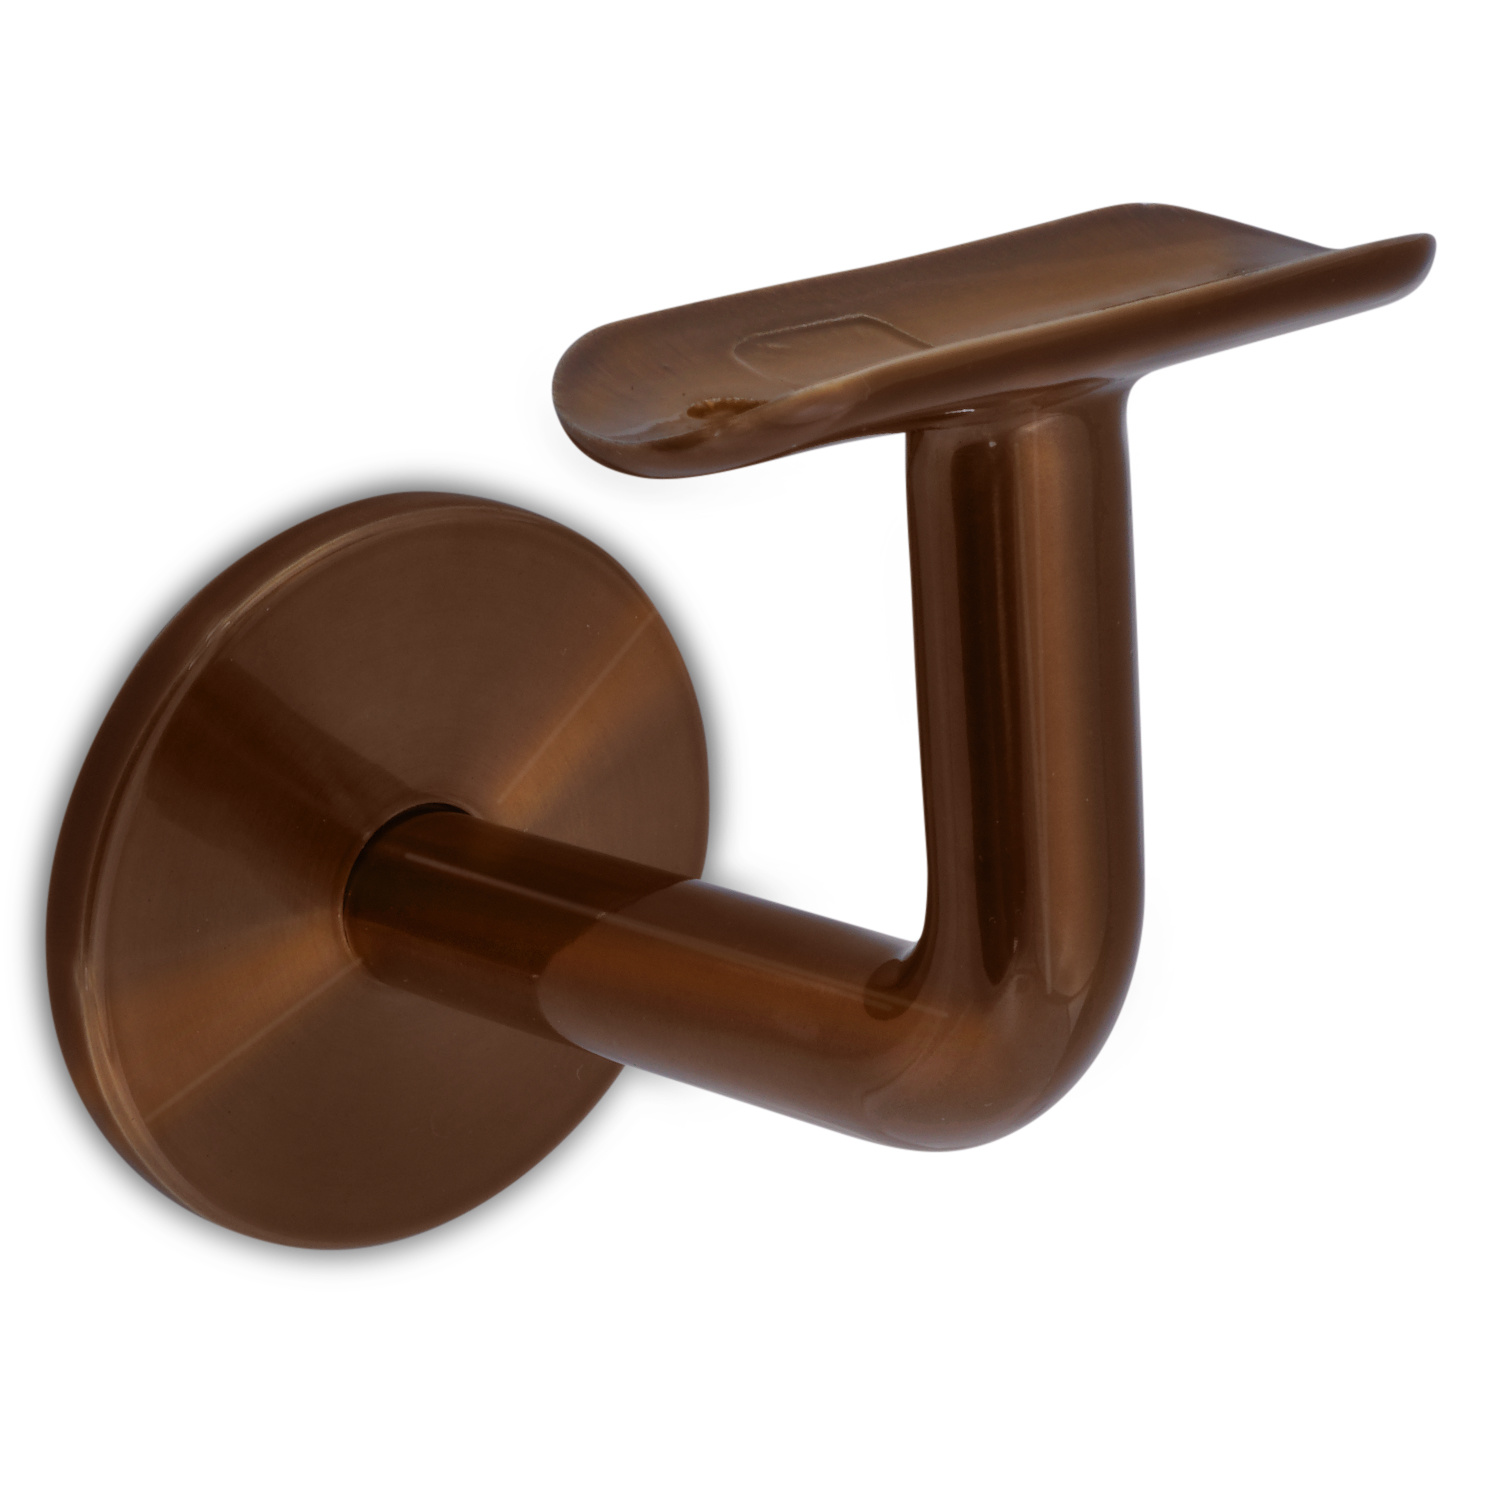 Trapleuning brons gecoat rond incl. dragers TYPE 3  - messing - goud - brons poedercoating